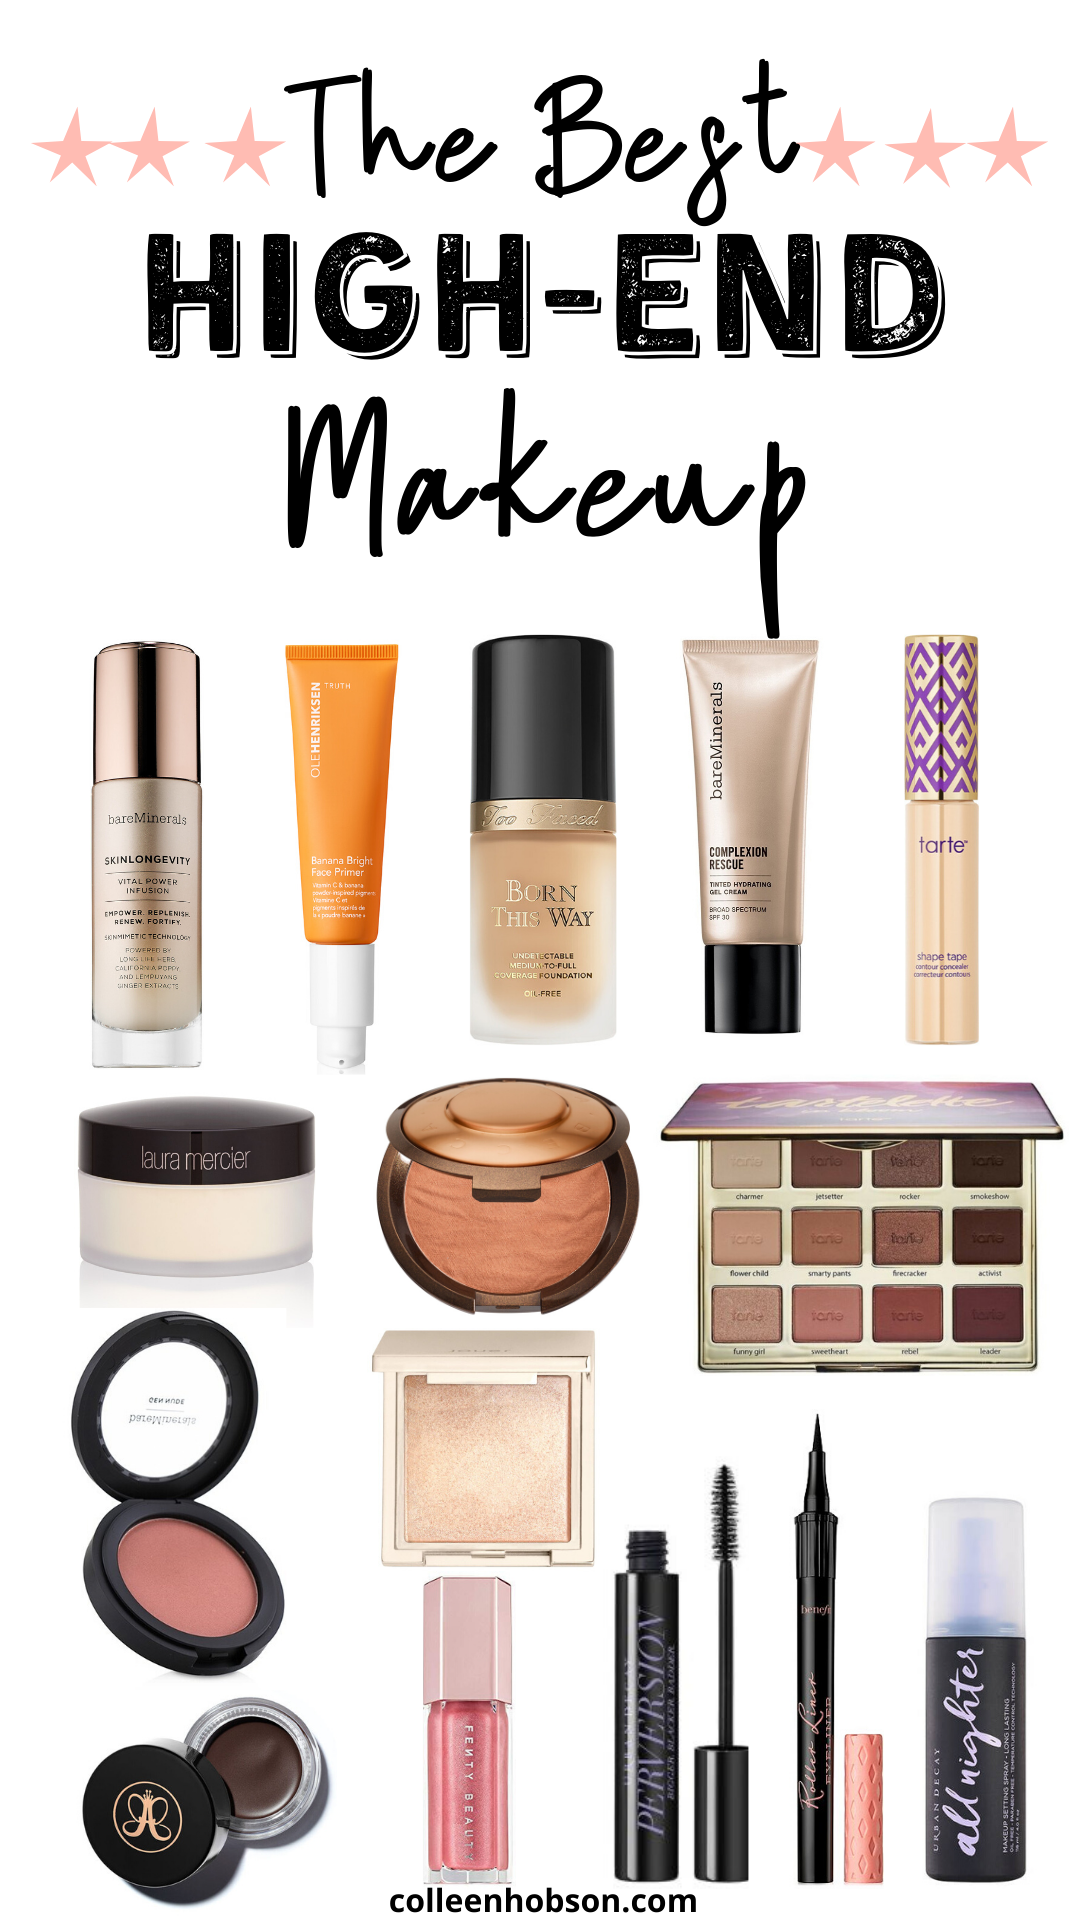 The Best High End Makeup Holy Grail Products Colleen Hobson In 2020 Best High End Makeup High End Makeup Luxury Makeup